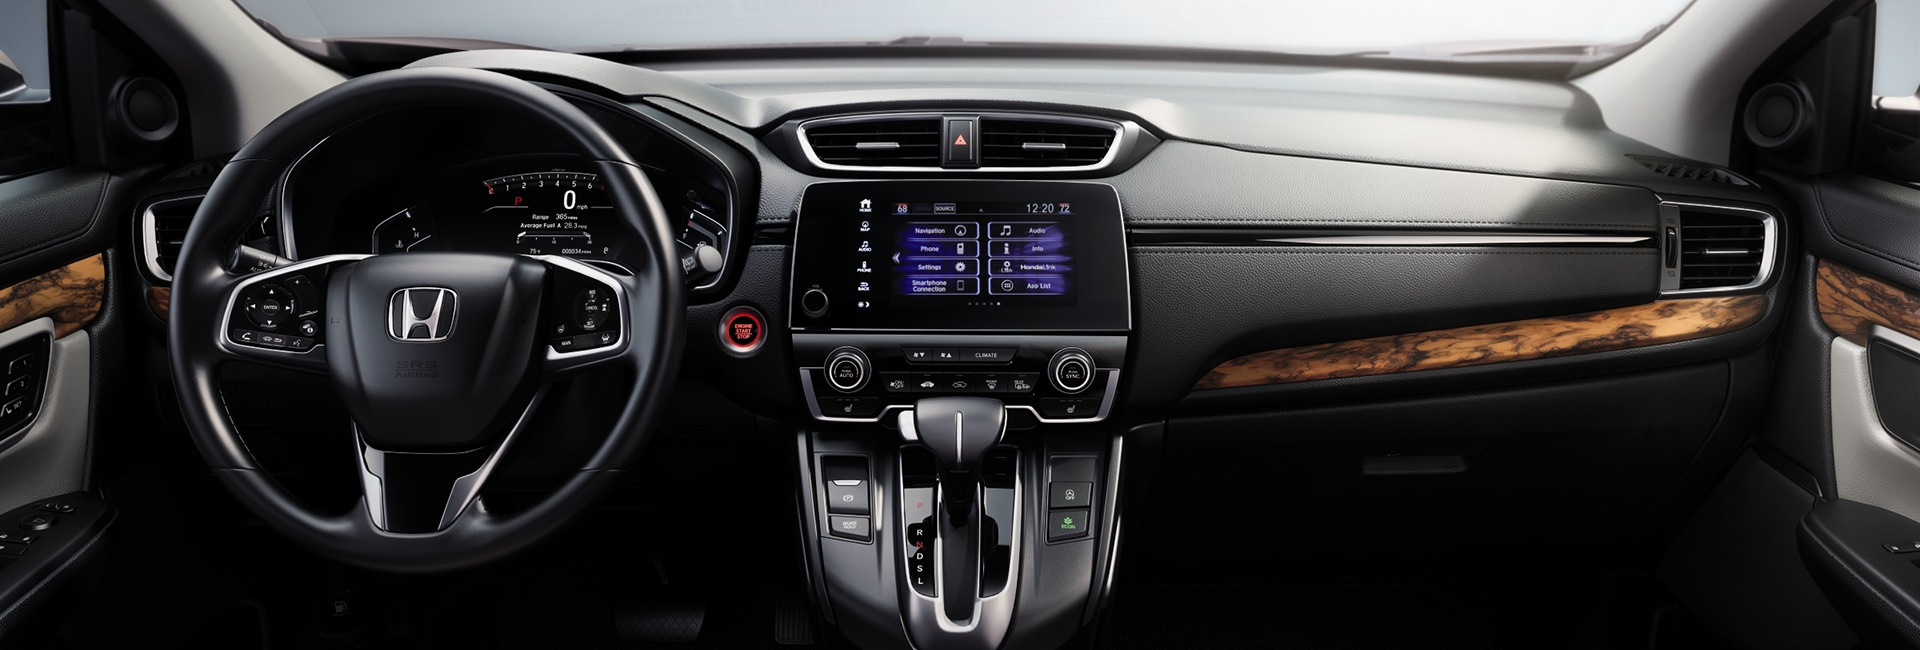 2020 Honda CR-V Interior Features